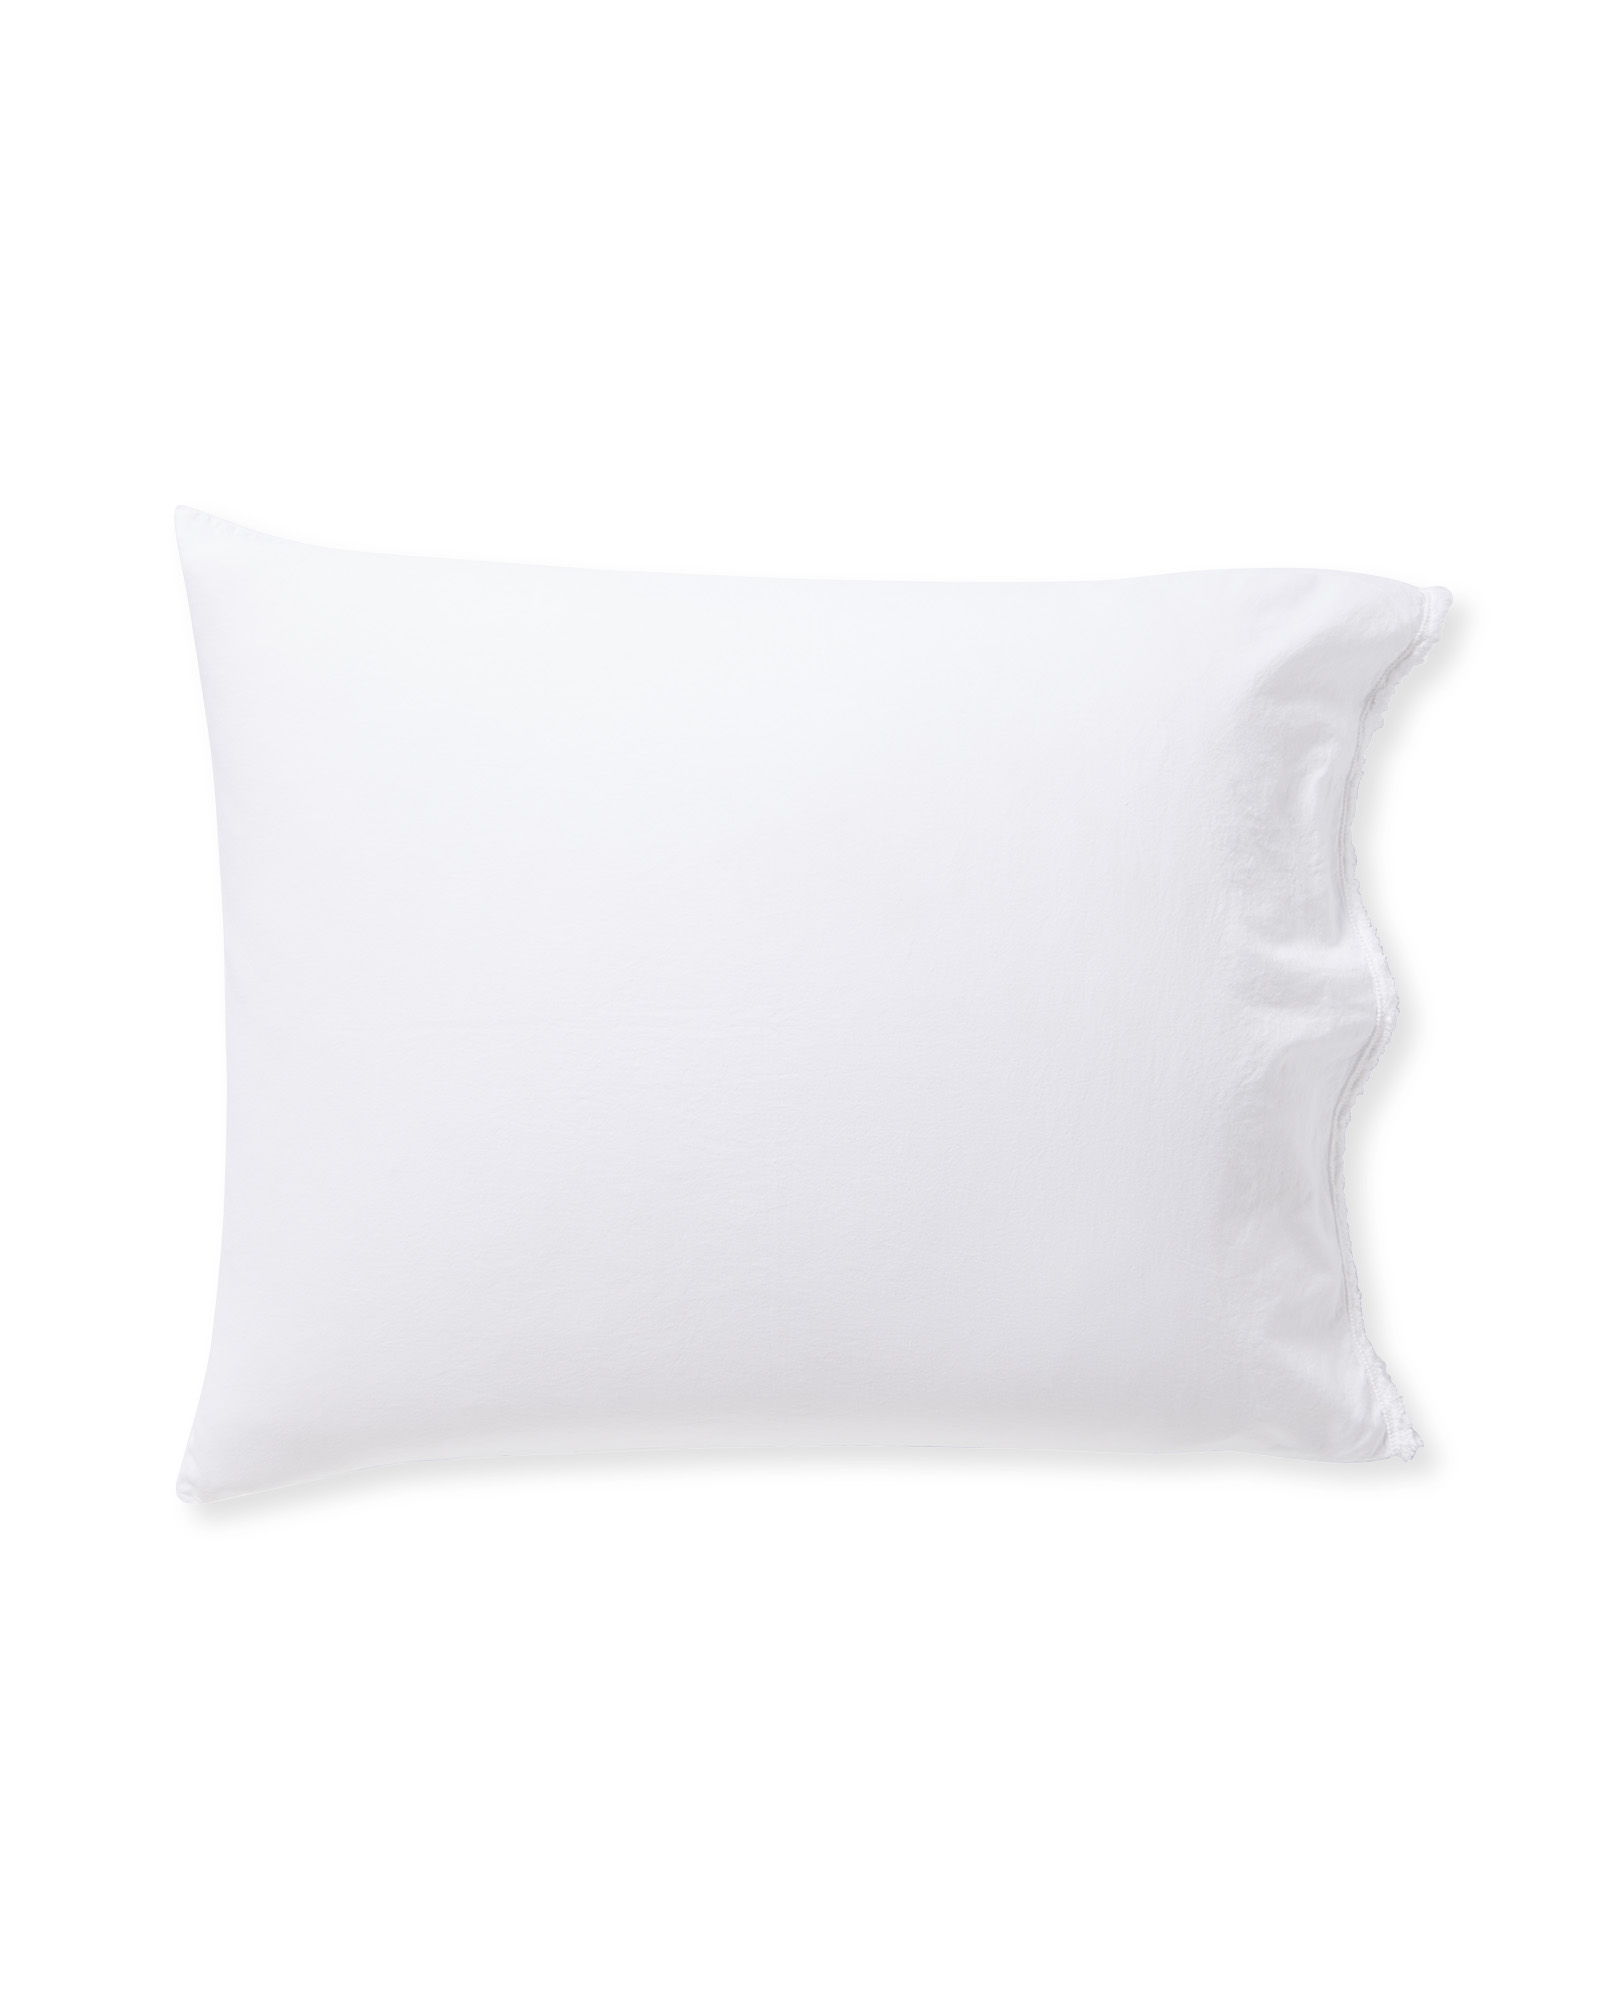 Mar Vista Pillowcases (Set of 2), White